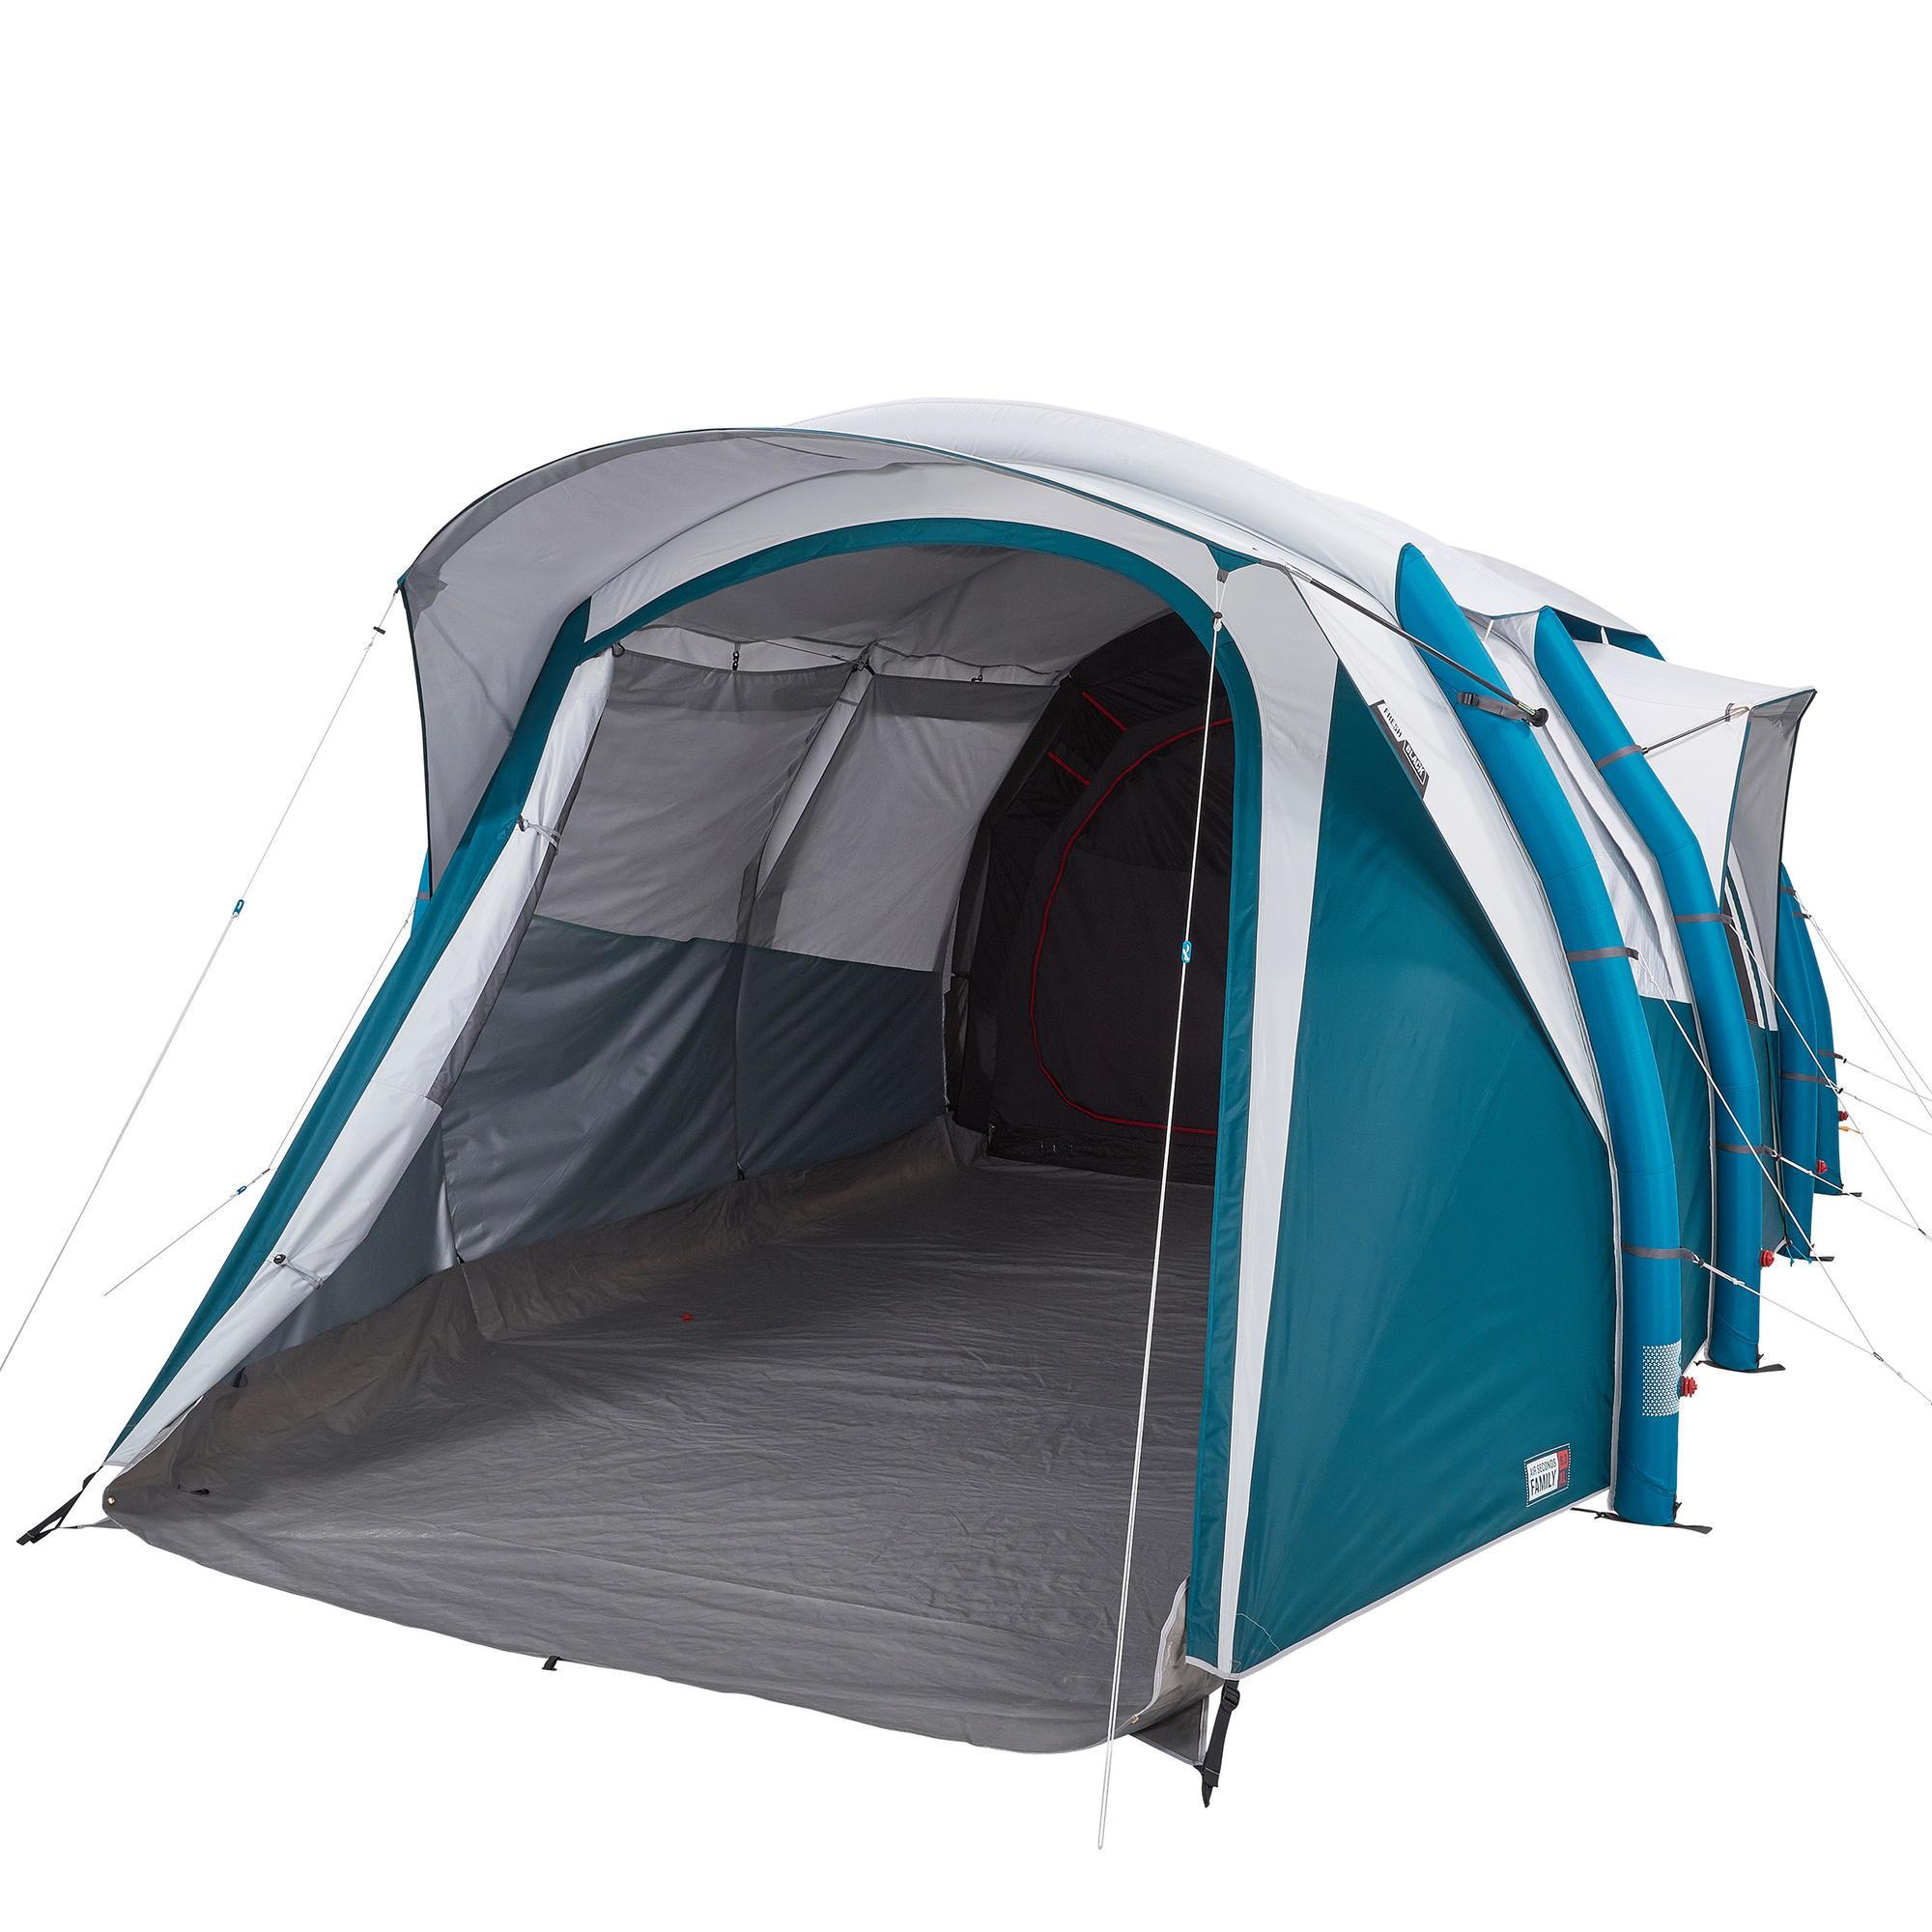 tente gonflable de camping air seconds 6 3 f b 6 personnes 3 chambres